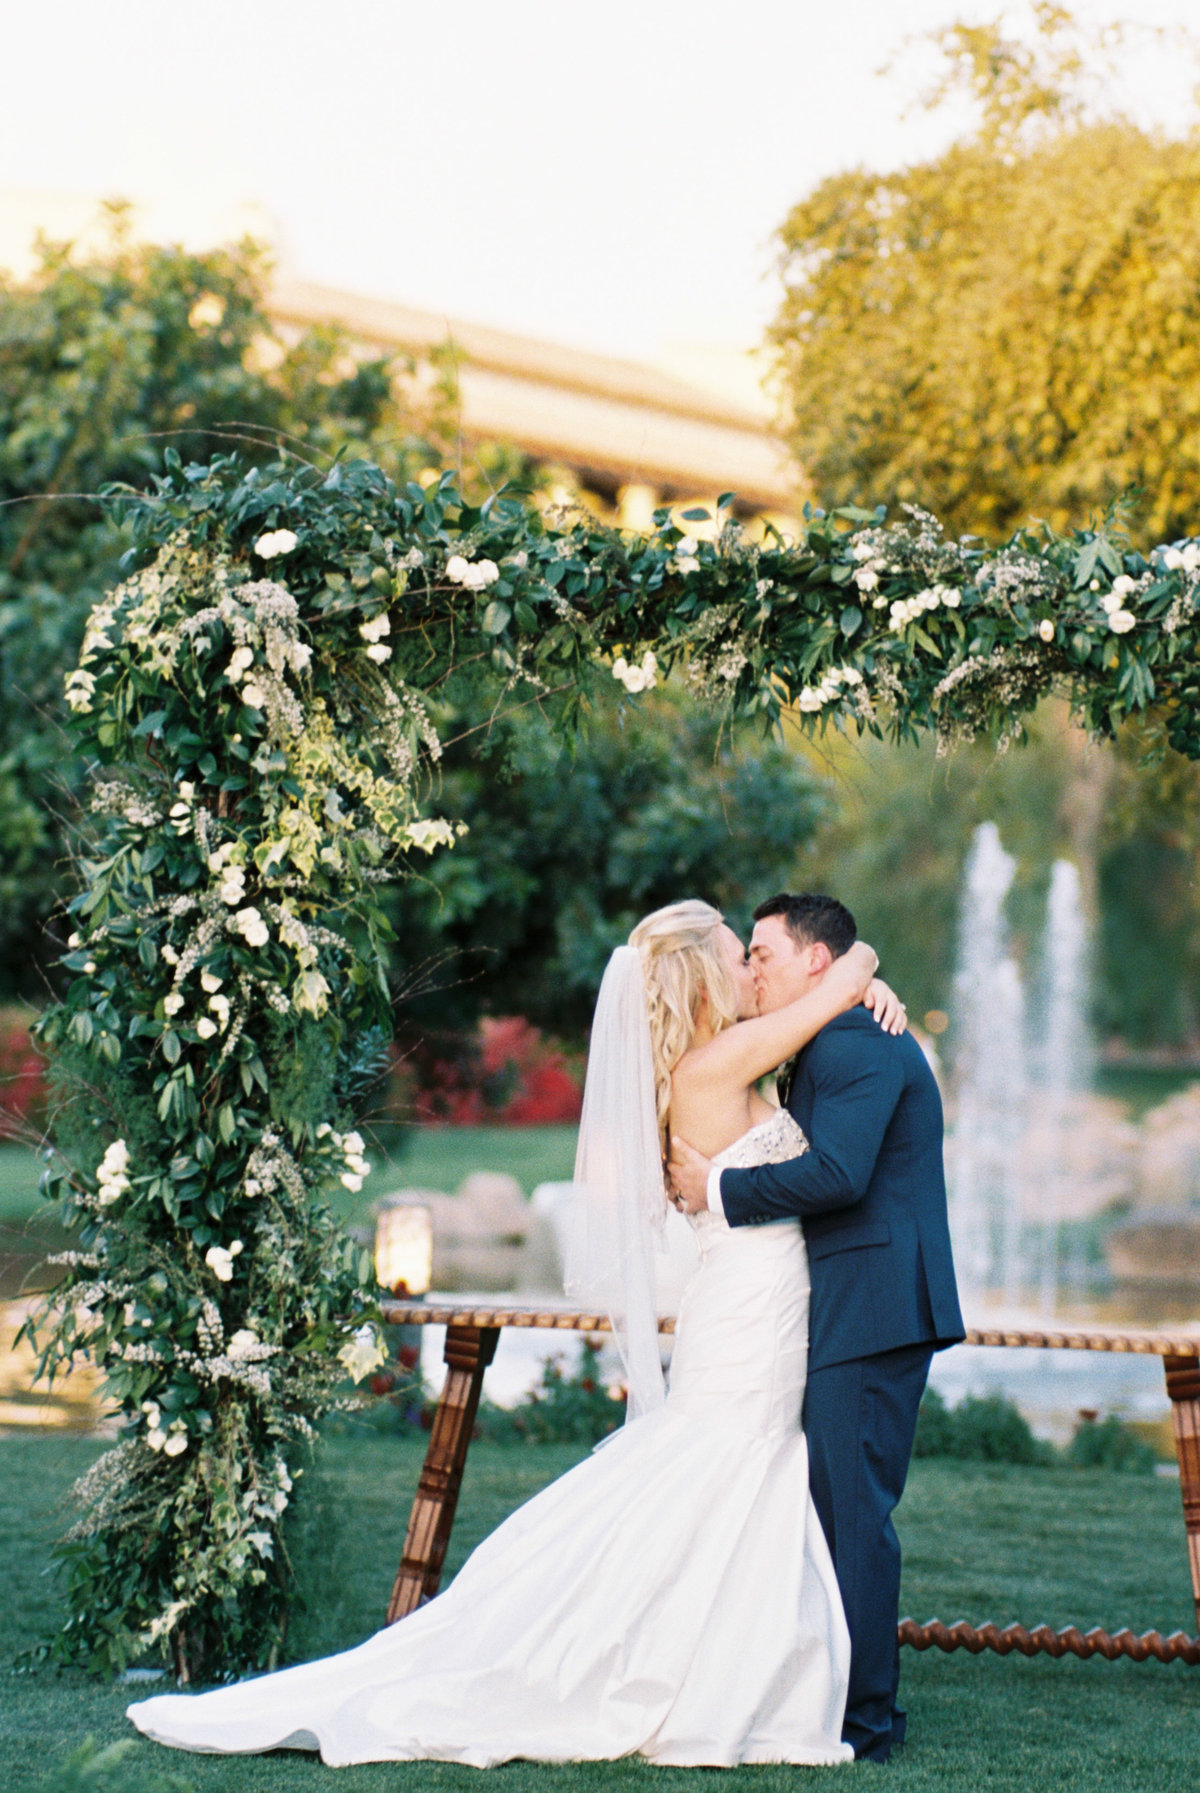 Fairmont Princess WEdding Scottsdale Wedding Celebrations in Paper Stationary Maree Wedding Dress Flower Studio Tre Ja Vu Band Brushfire Photography Glamour and Wood Rentals Scottsdale Wedding Planner Phoenix Wedding Planner Garden wedding Ballroom wedding Outdoor ceremony